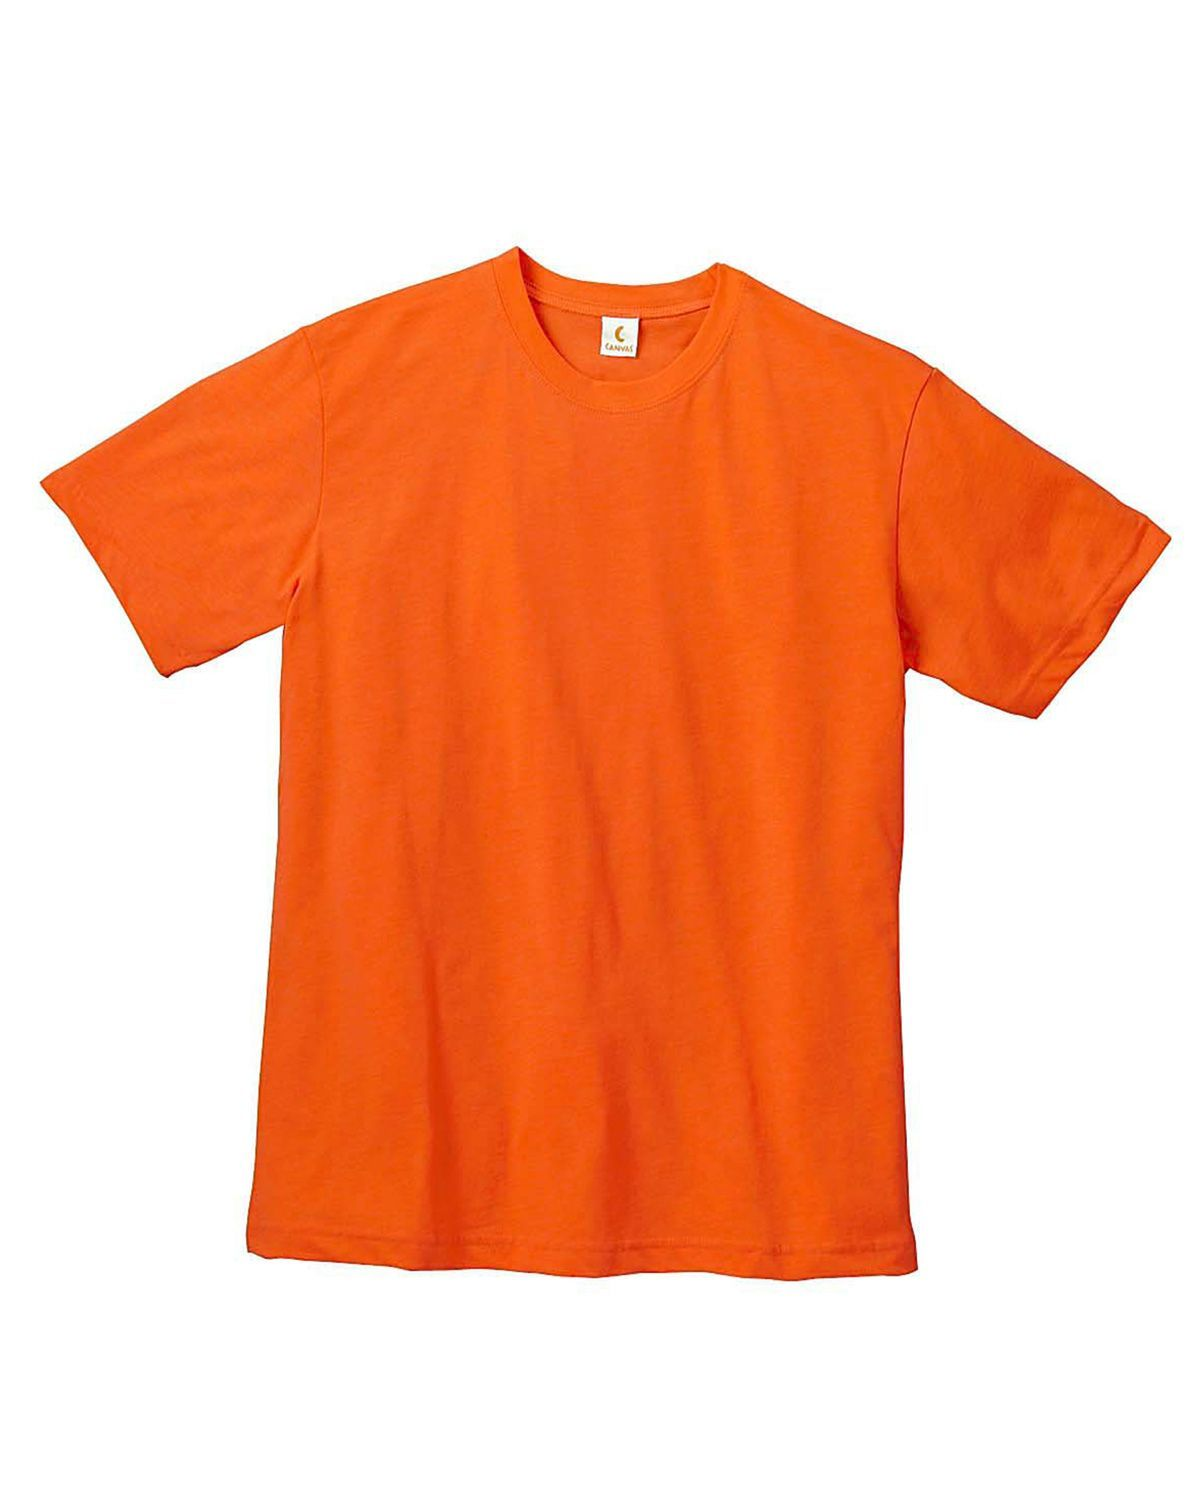 Bella + Canvas 3001C Jersey Short-Sleeve Unisex T-Shirt - Orange - XS from Bella + Canvas